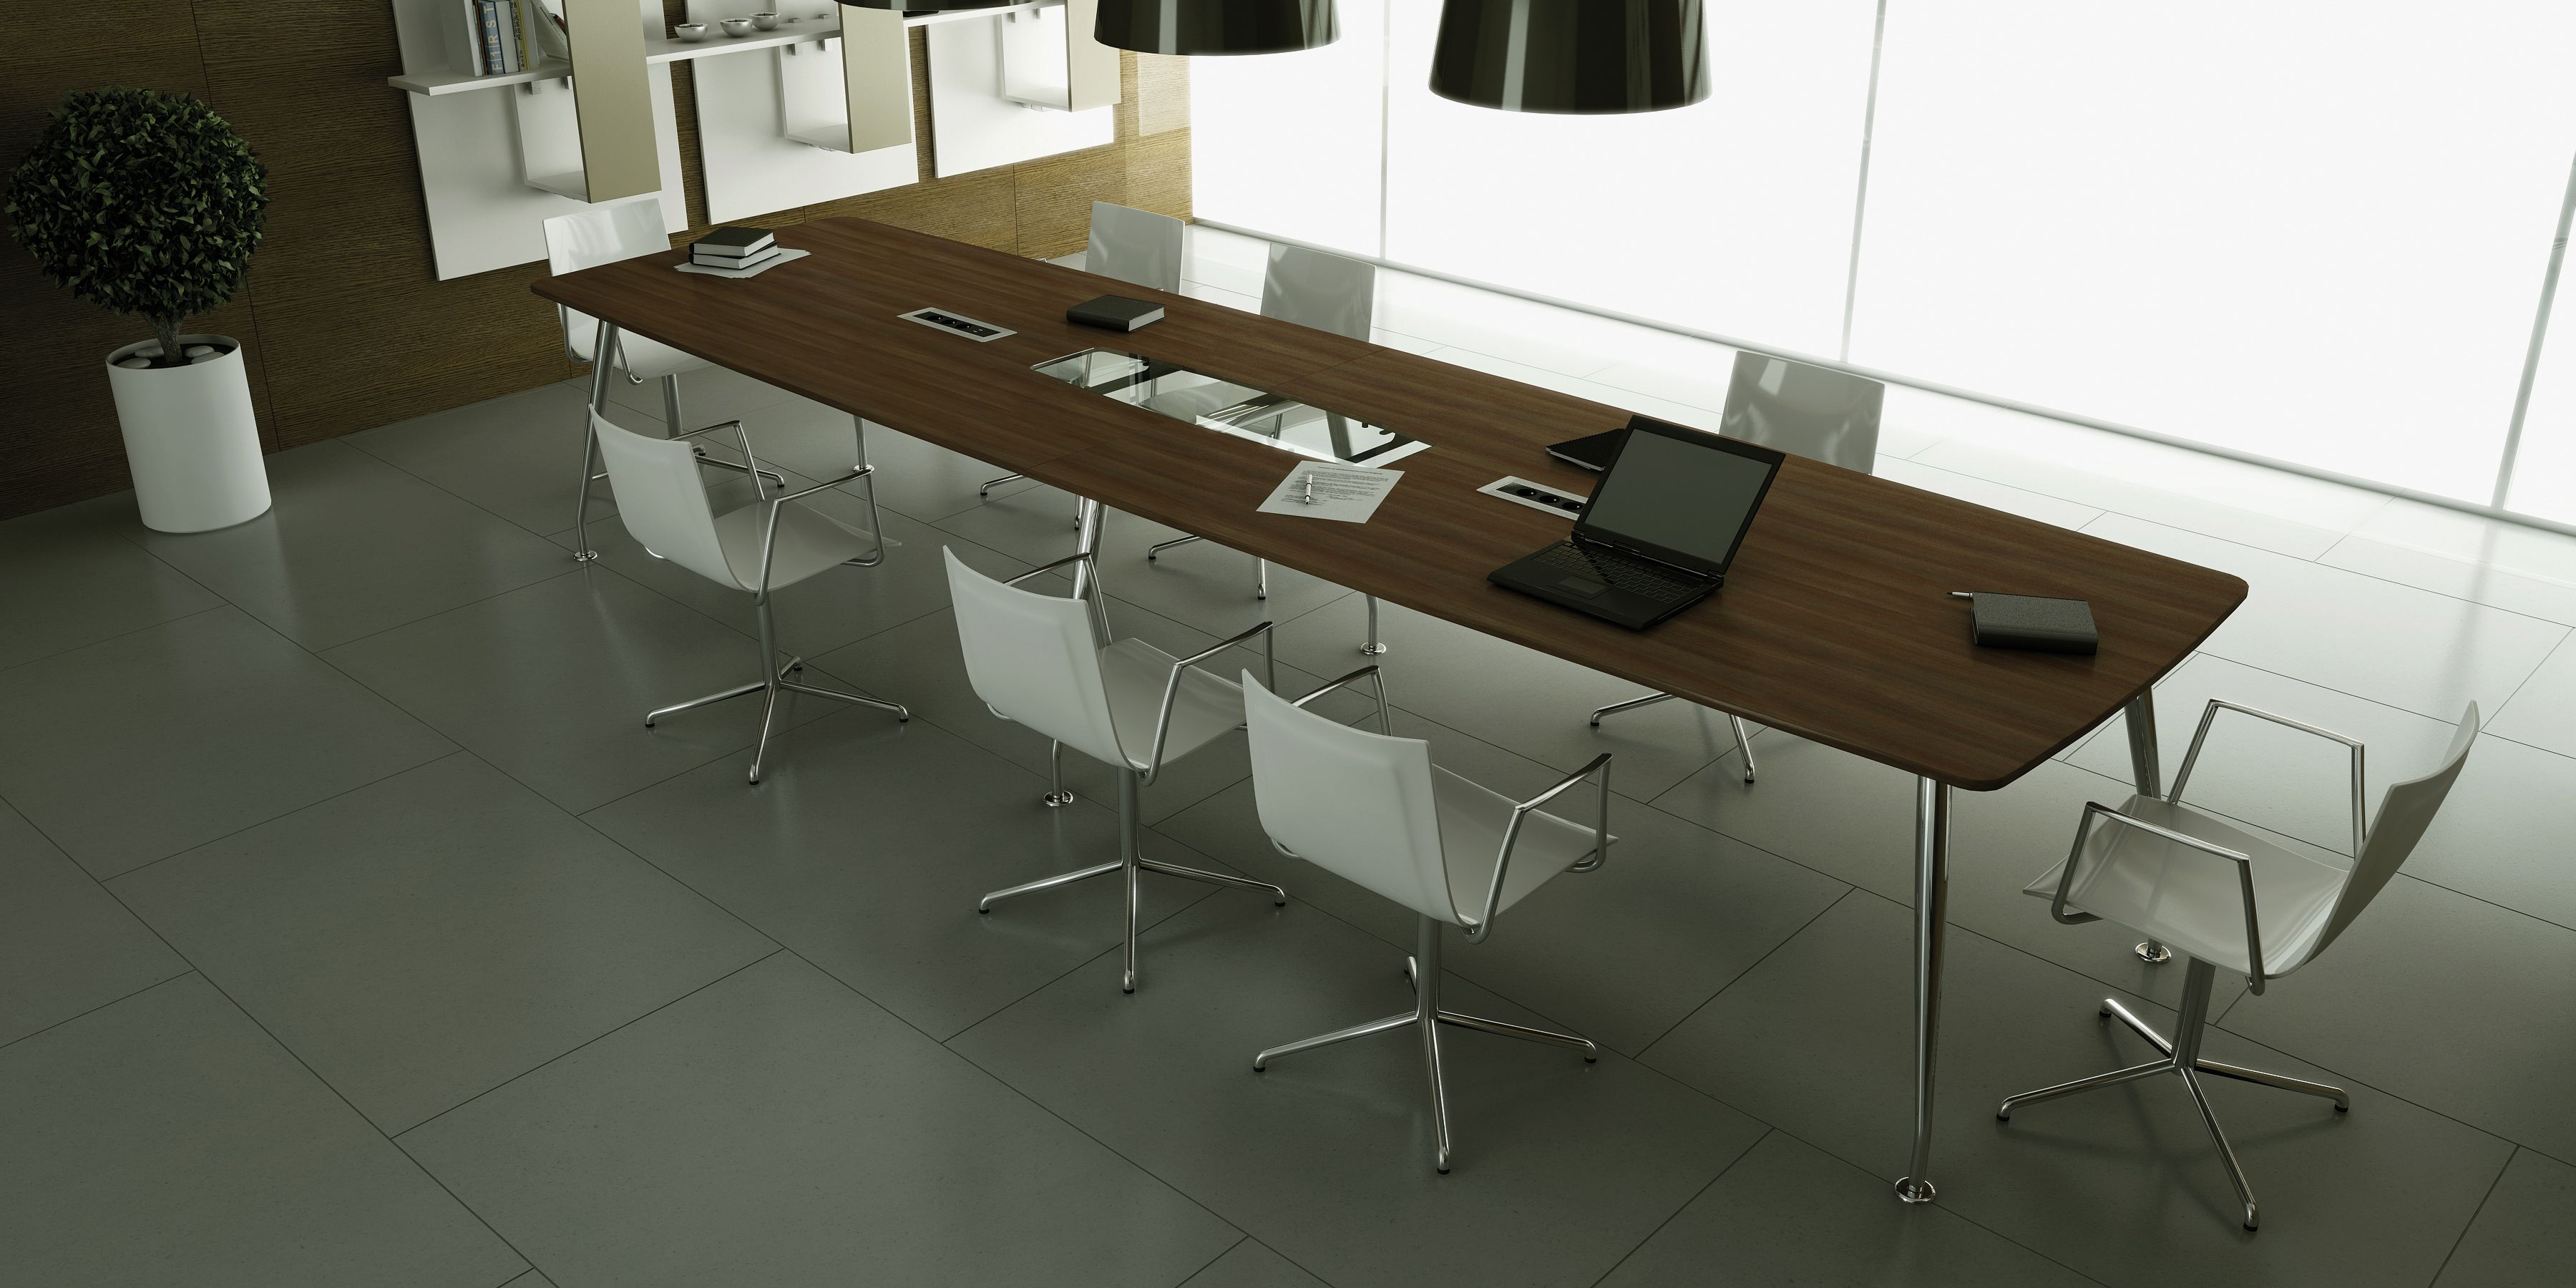 Meeting table with luxury design and high quality. Office